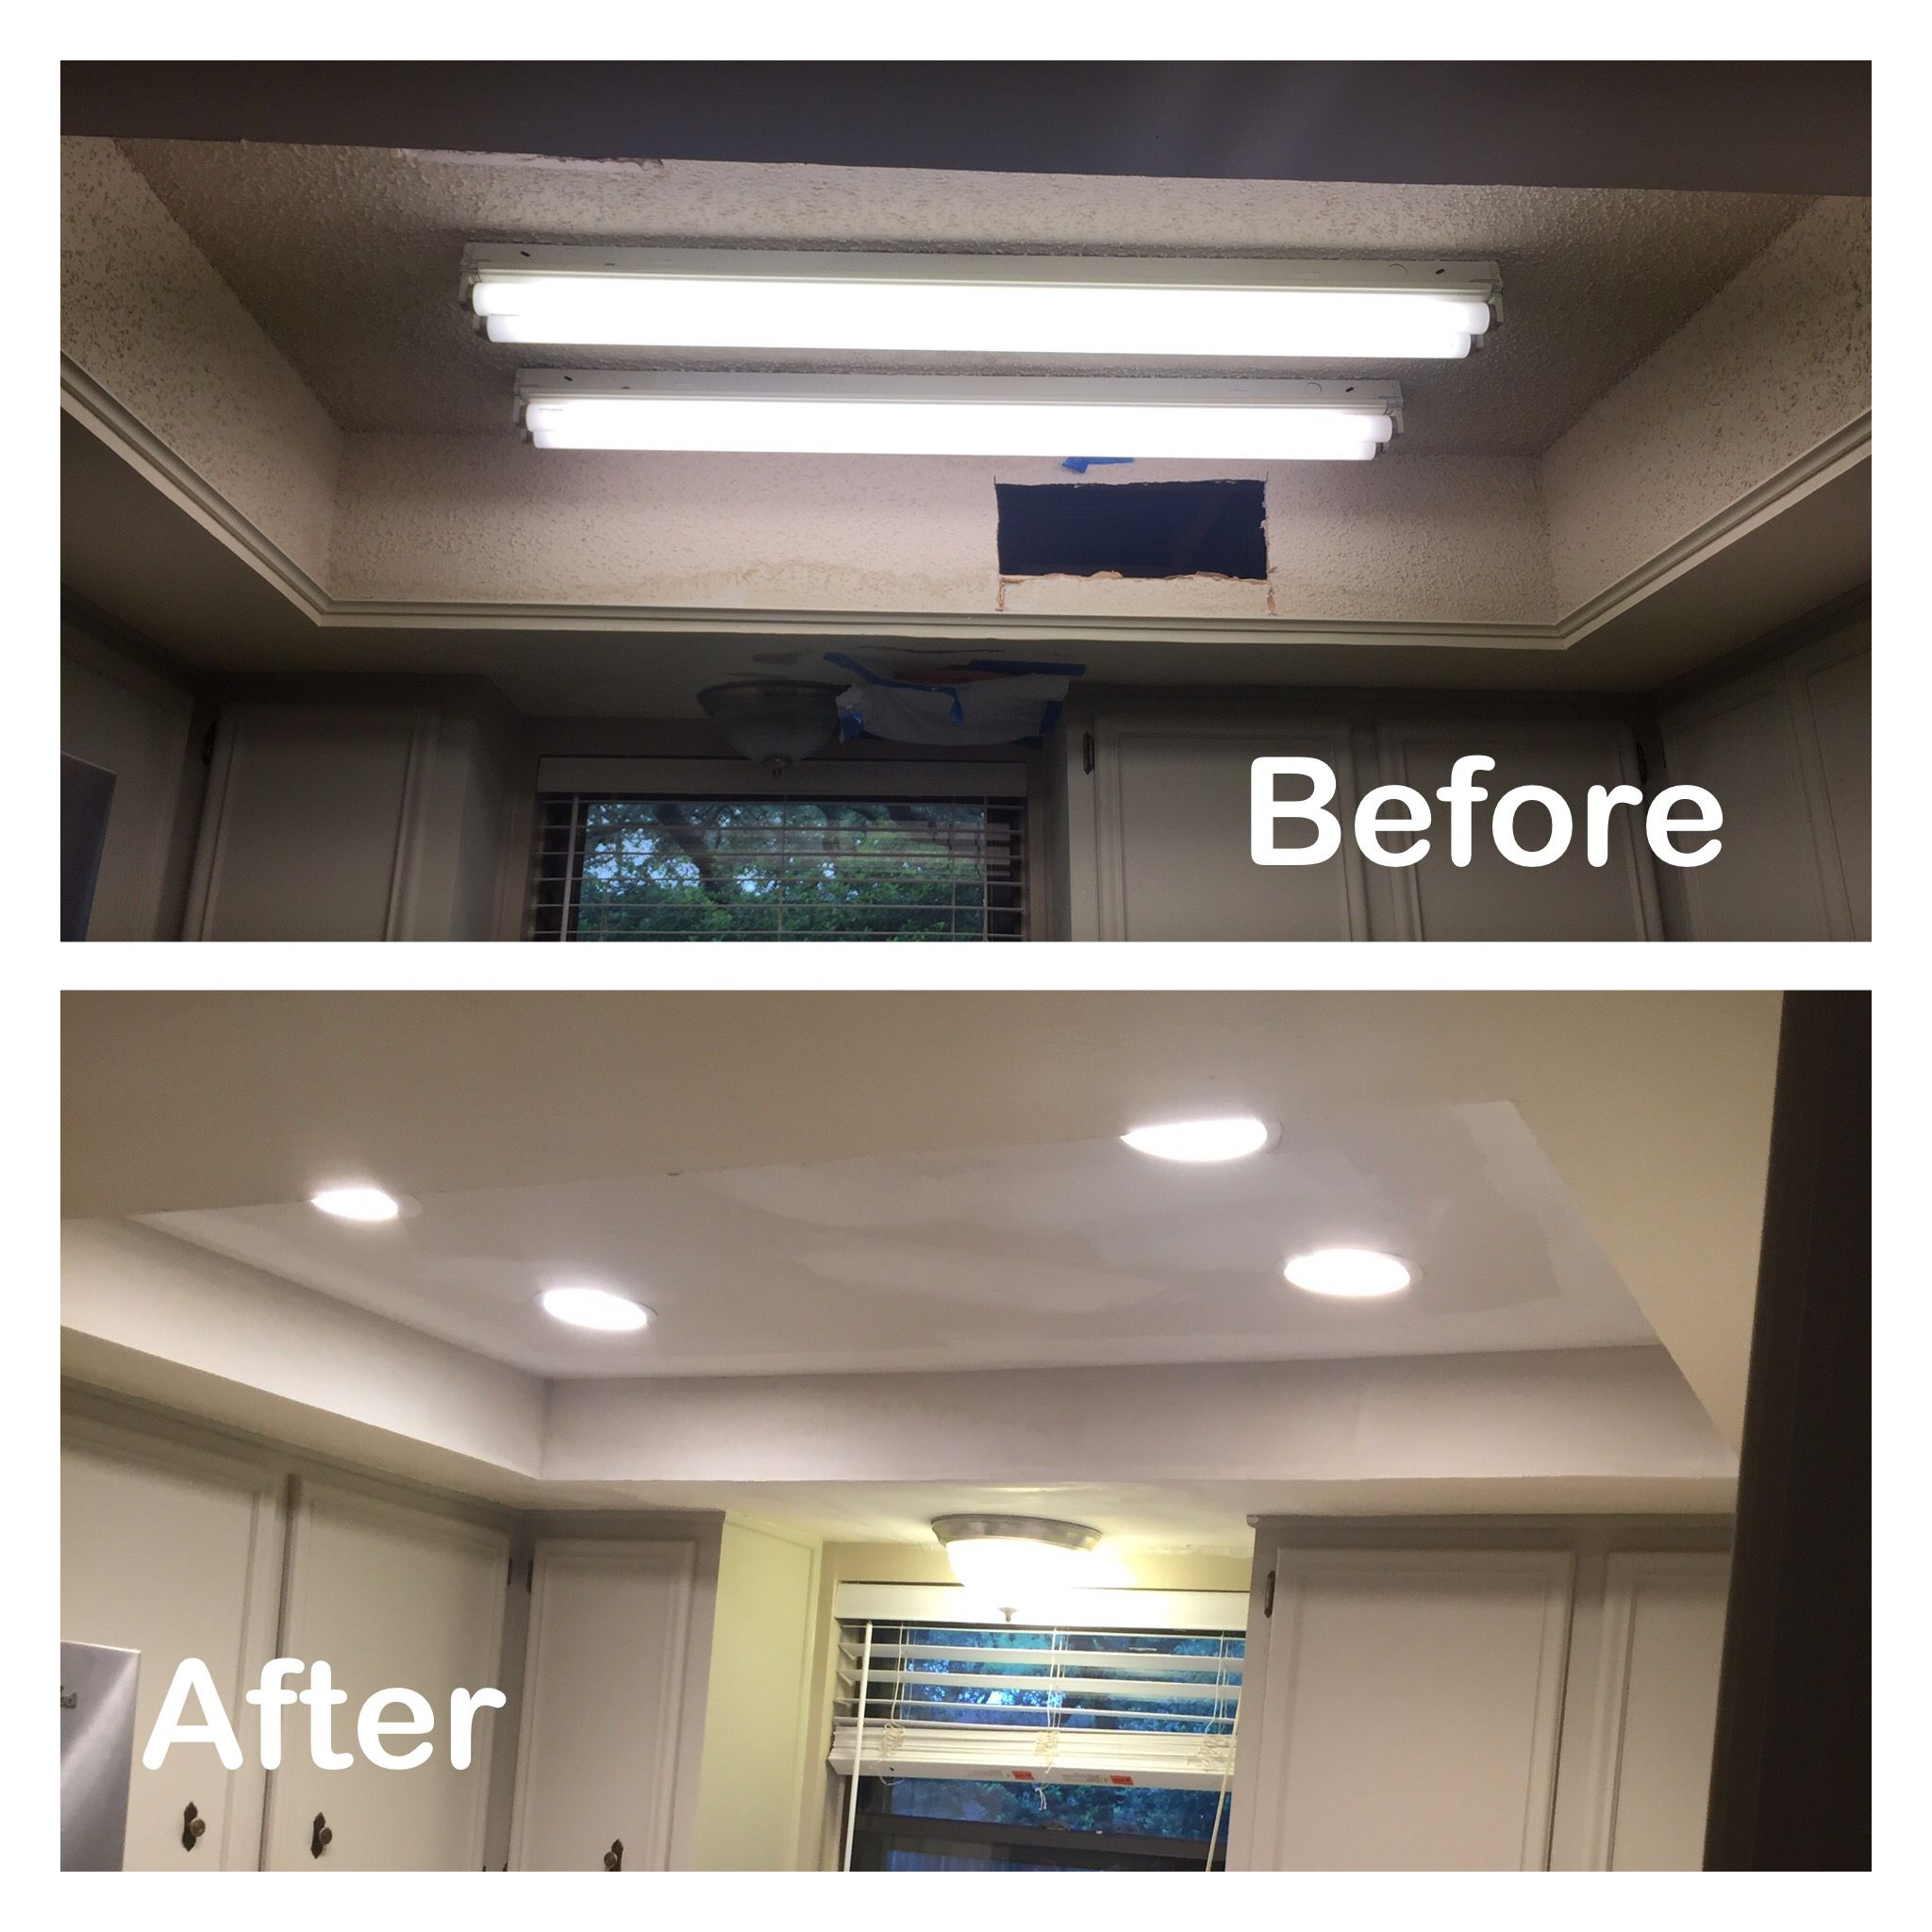 Fluorescent Lighting 1970s Kitchen Light Box Before And After Fluorescent Light Removed